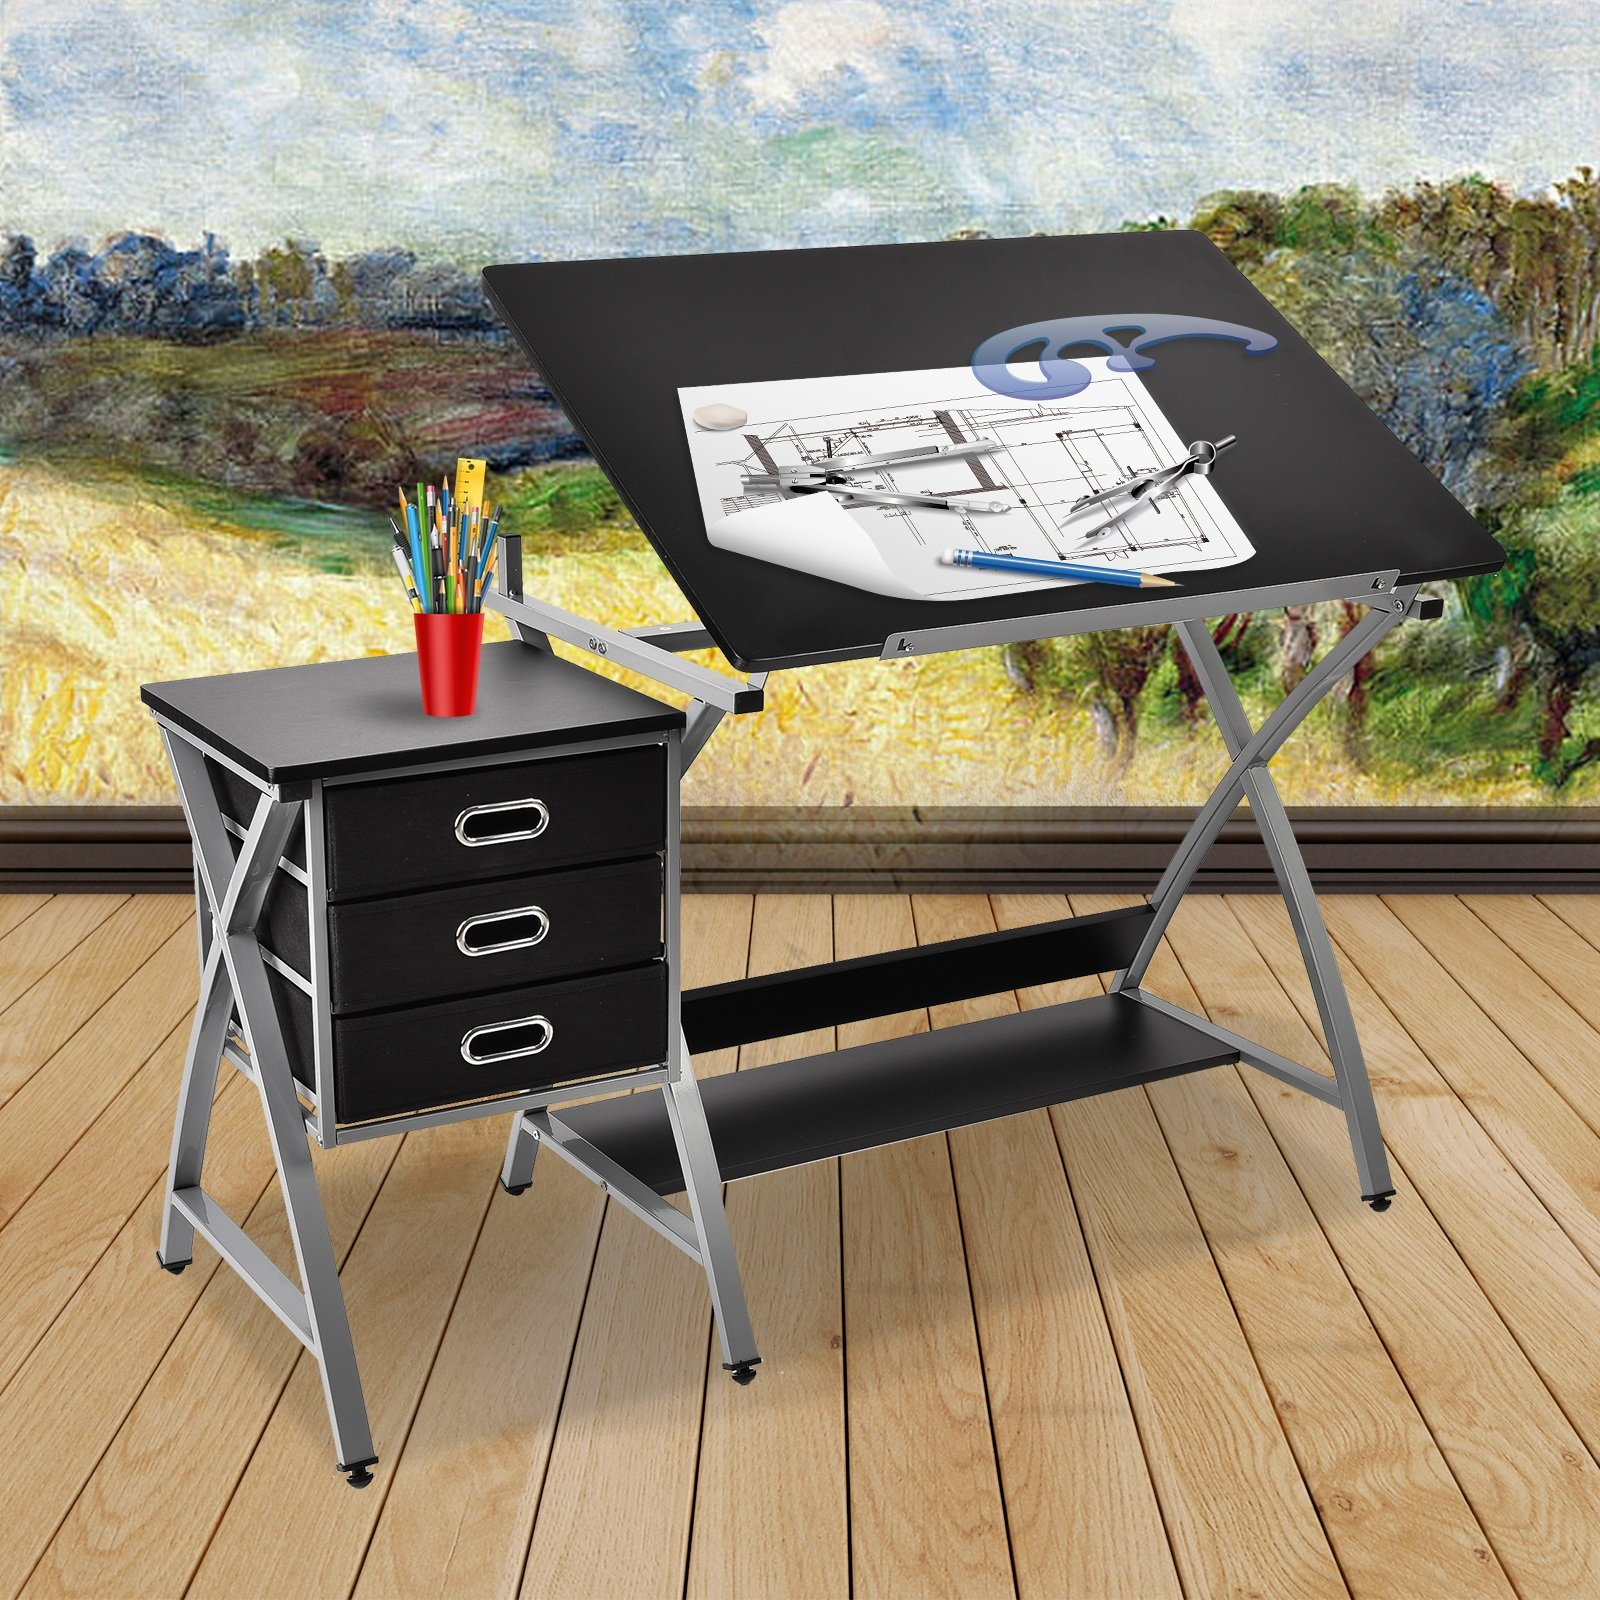 Mecor Drafting Table Art Craft Drawing Desk Art Hobby Folding Adjustable with Stool and 3 Drawers/Additional lower shelf,Black